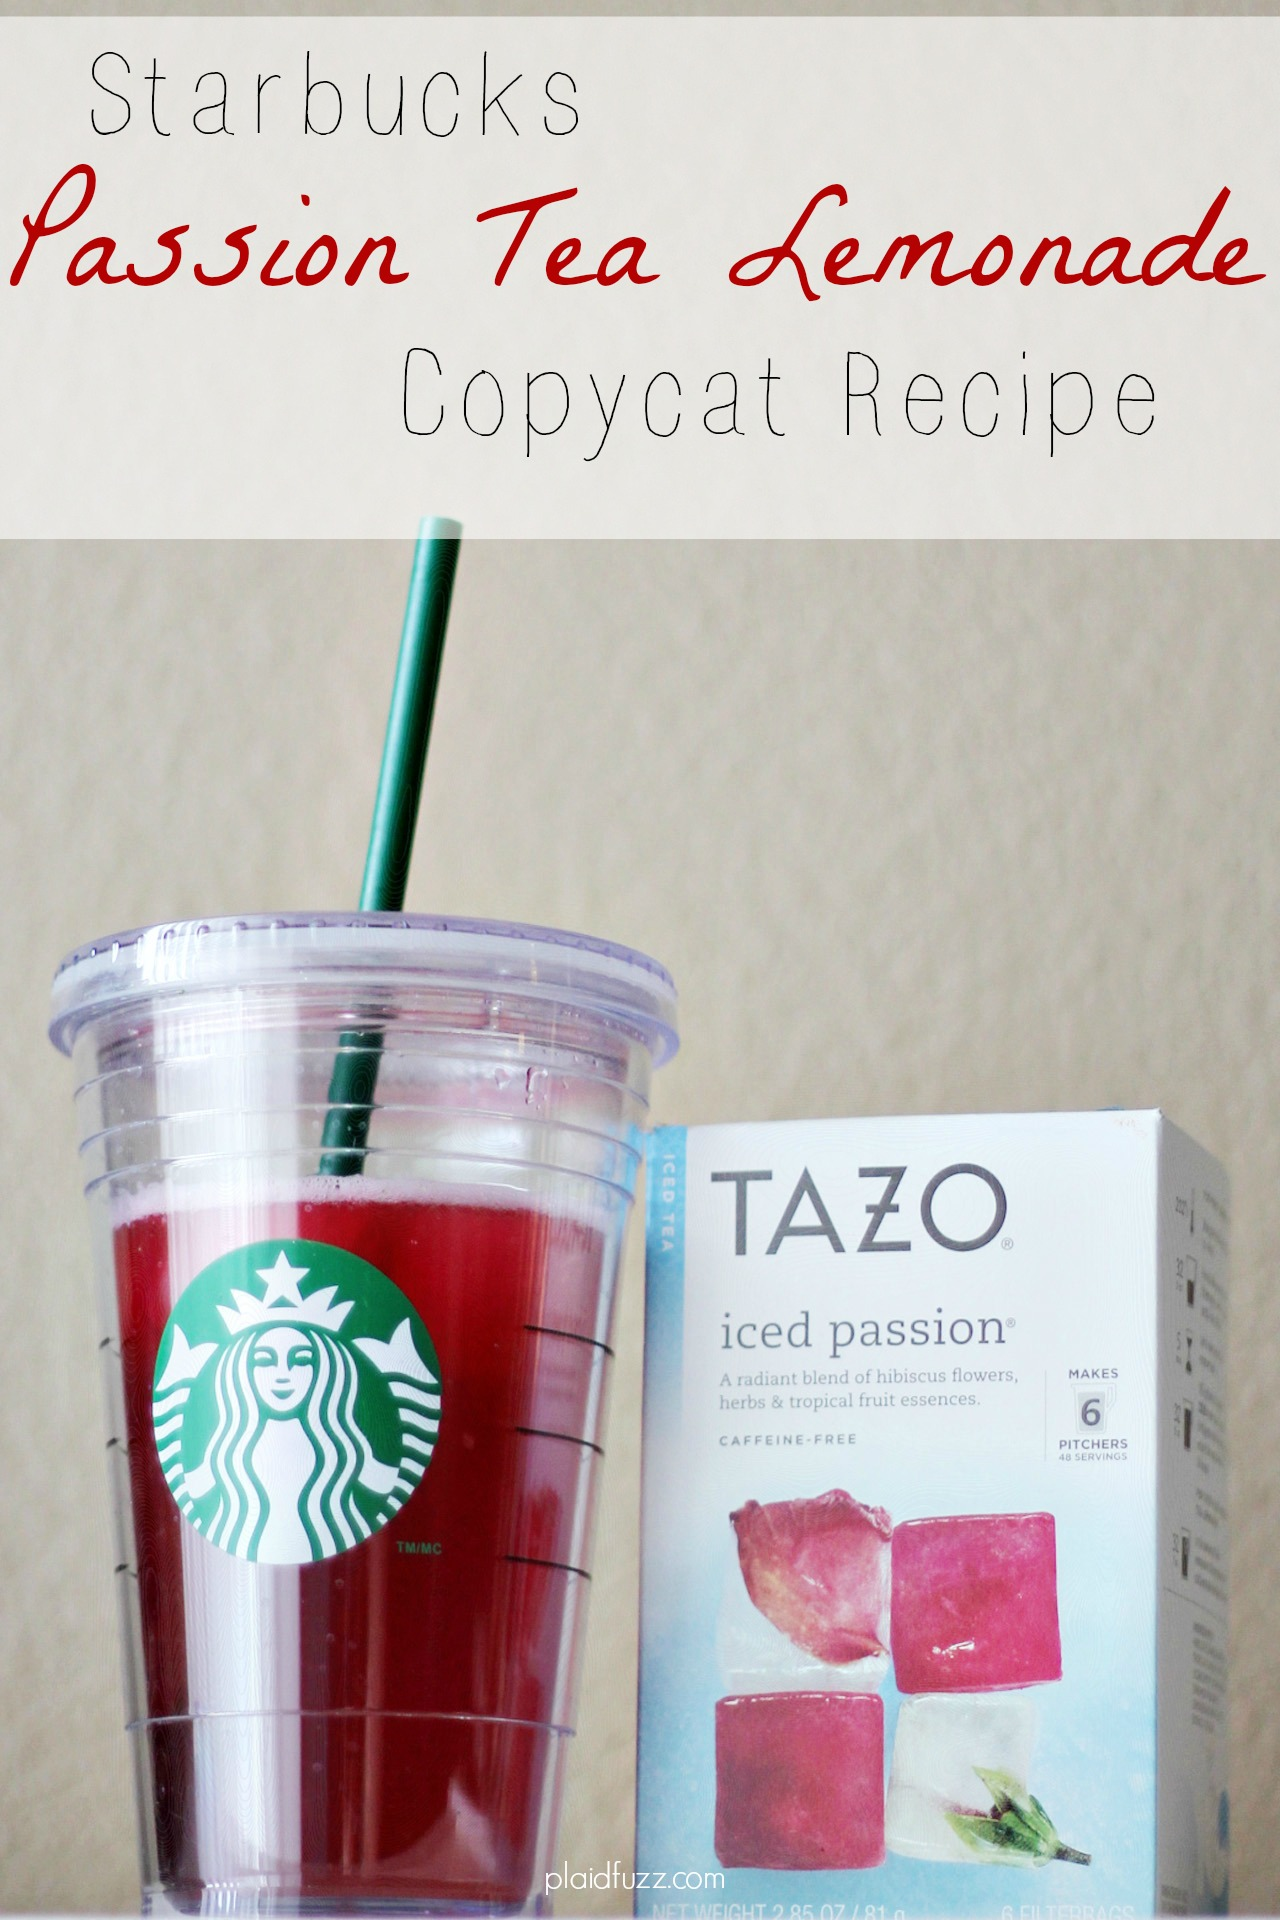 Starbucks Passion Tea Lemonade Copycat